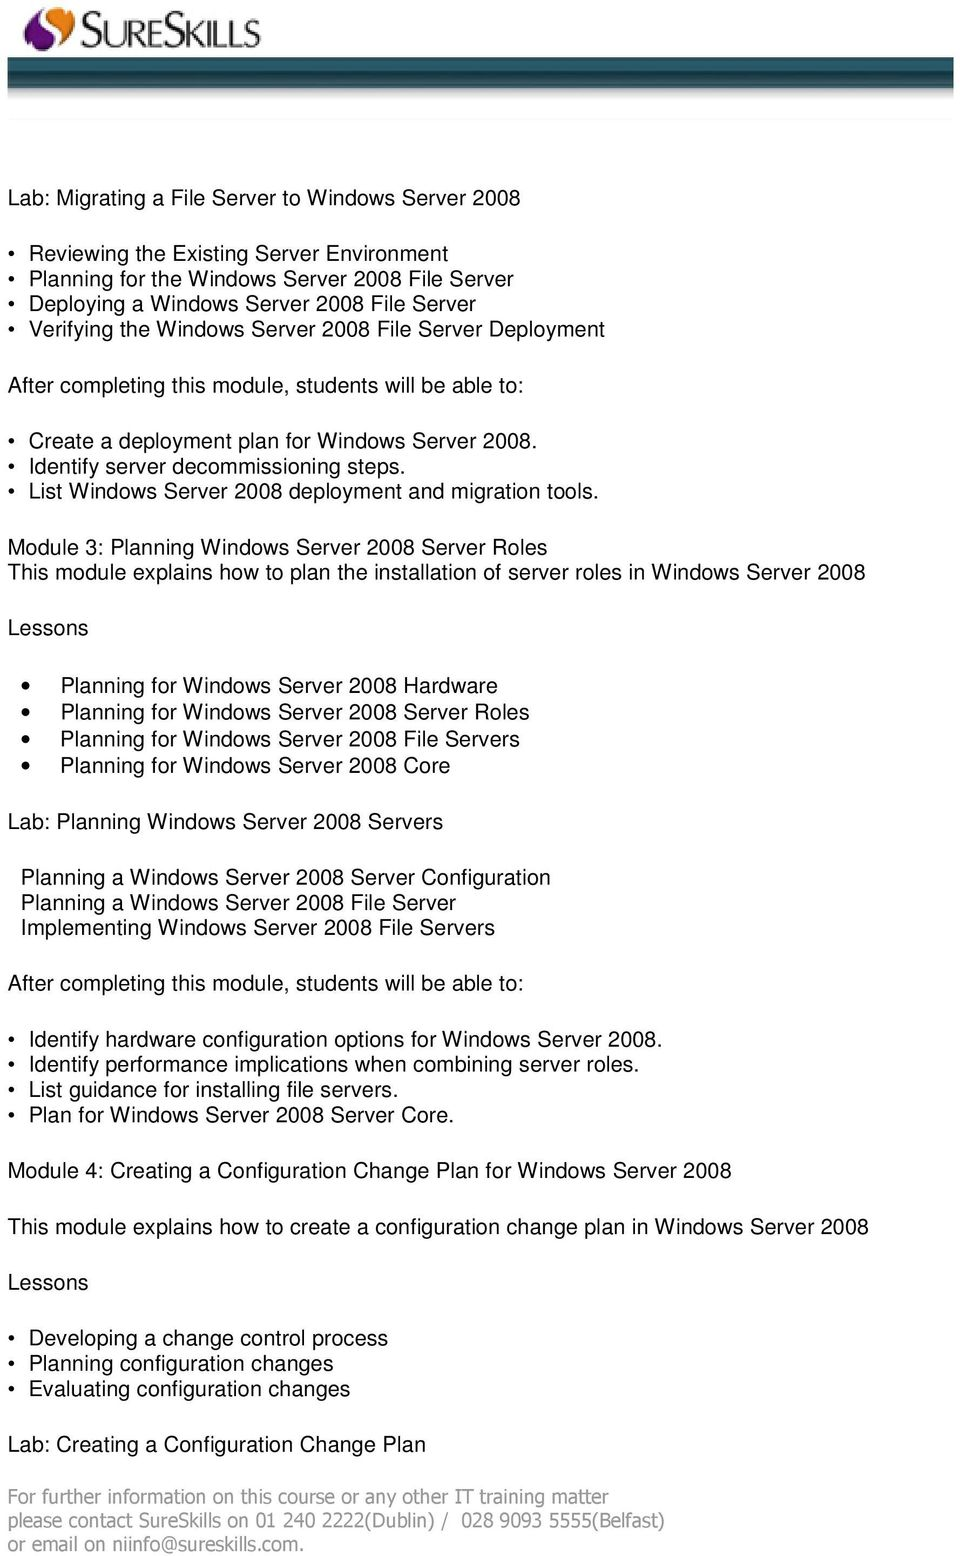 Module 3: Planning Windows Server 2008 Server Roles This module explains how to plan the installation of server roles in Windows Server 2008 Planning for Windows Server 2008 Hardware Planning for